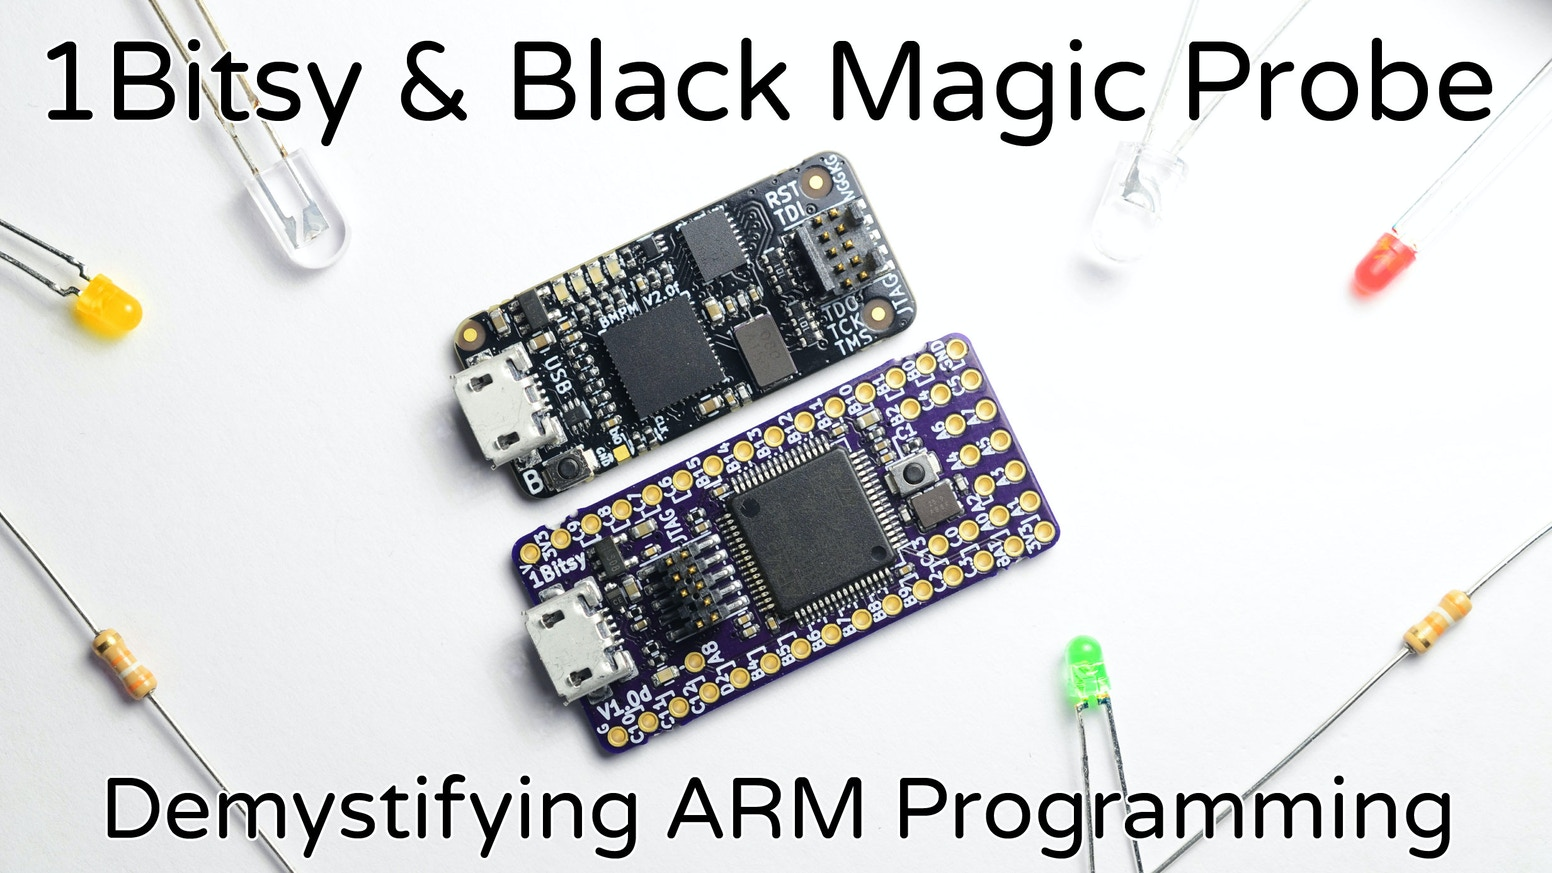 1bitsy Black Magic Probe Demystifying Arm Programming By Piotr Electric Circuit Board Processor Tshirts Is A User Friendly Open Source Cortex M4f Development Platform And